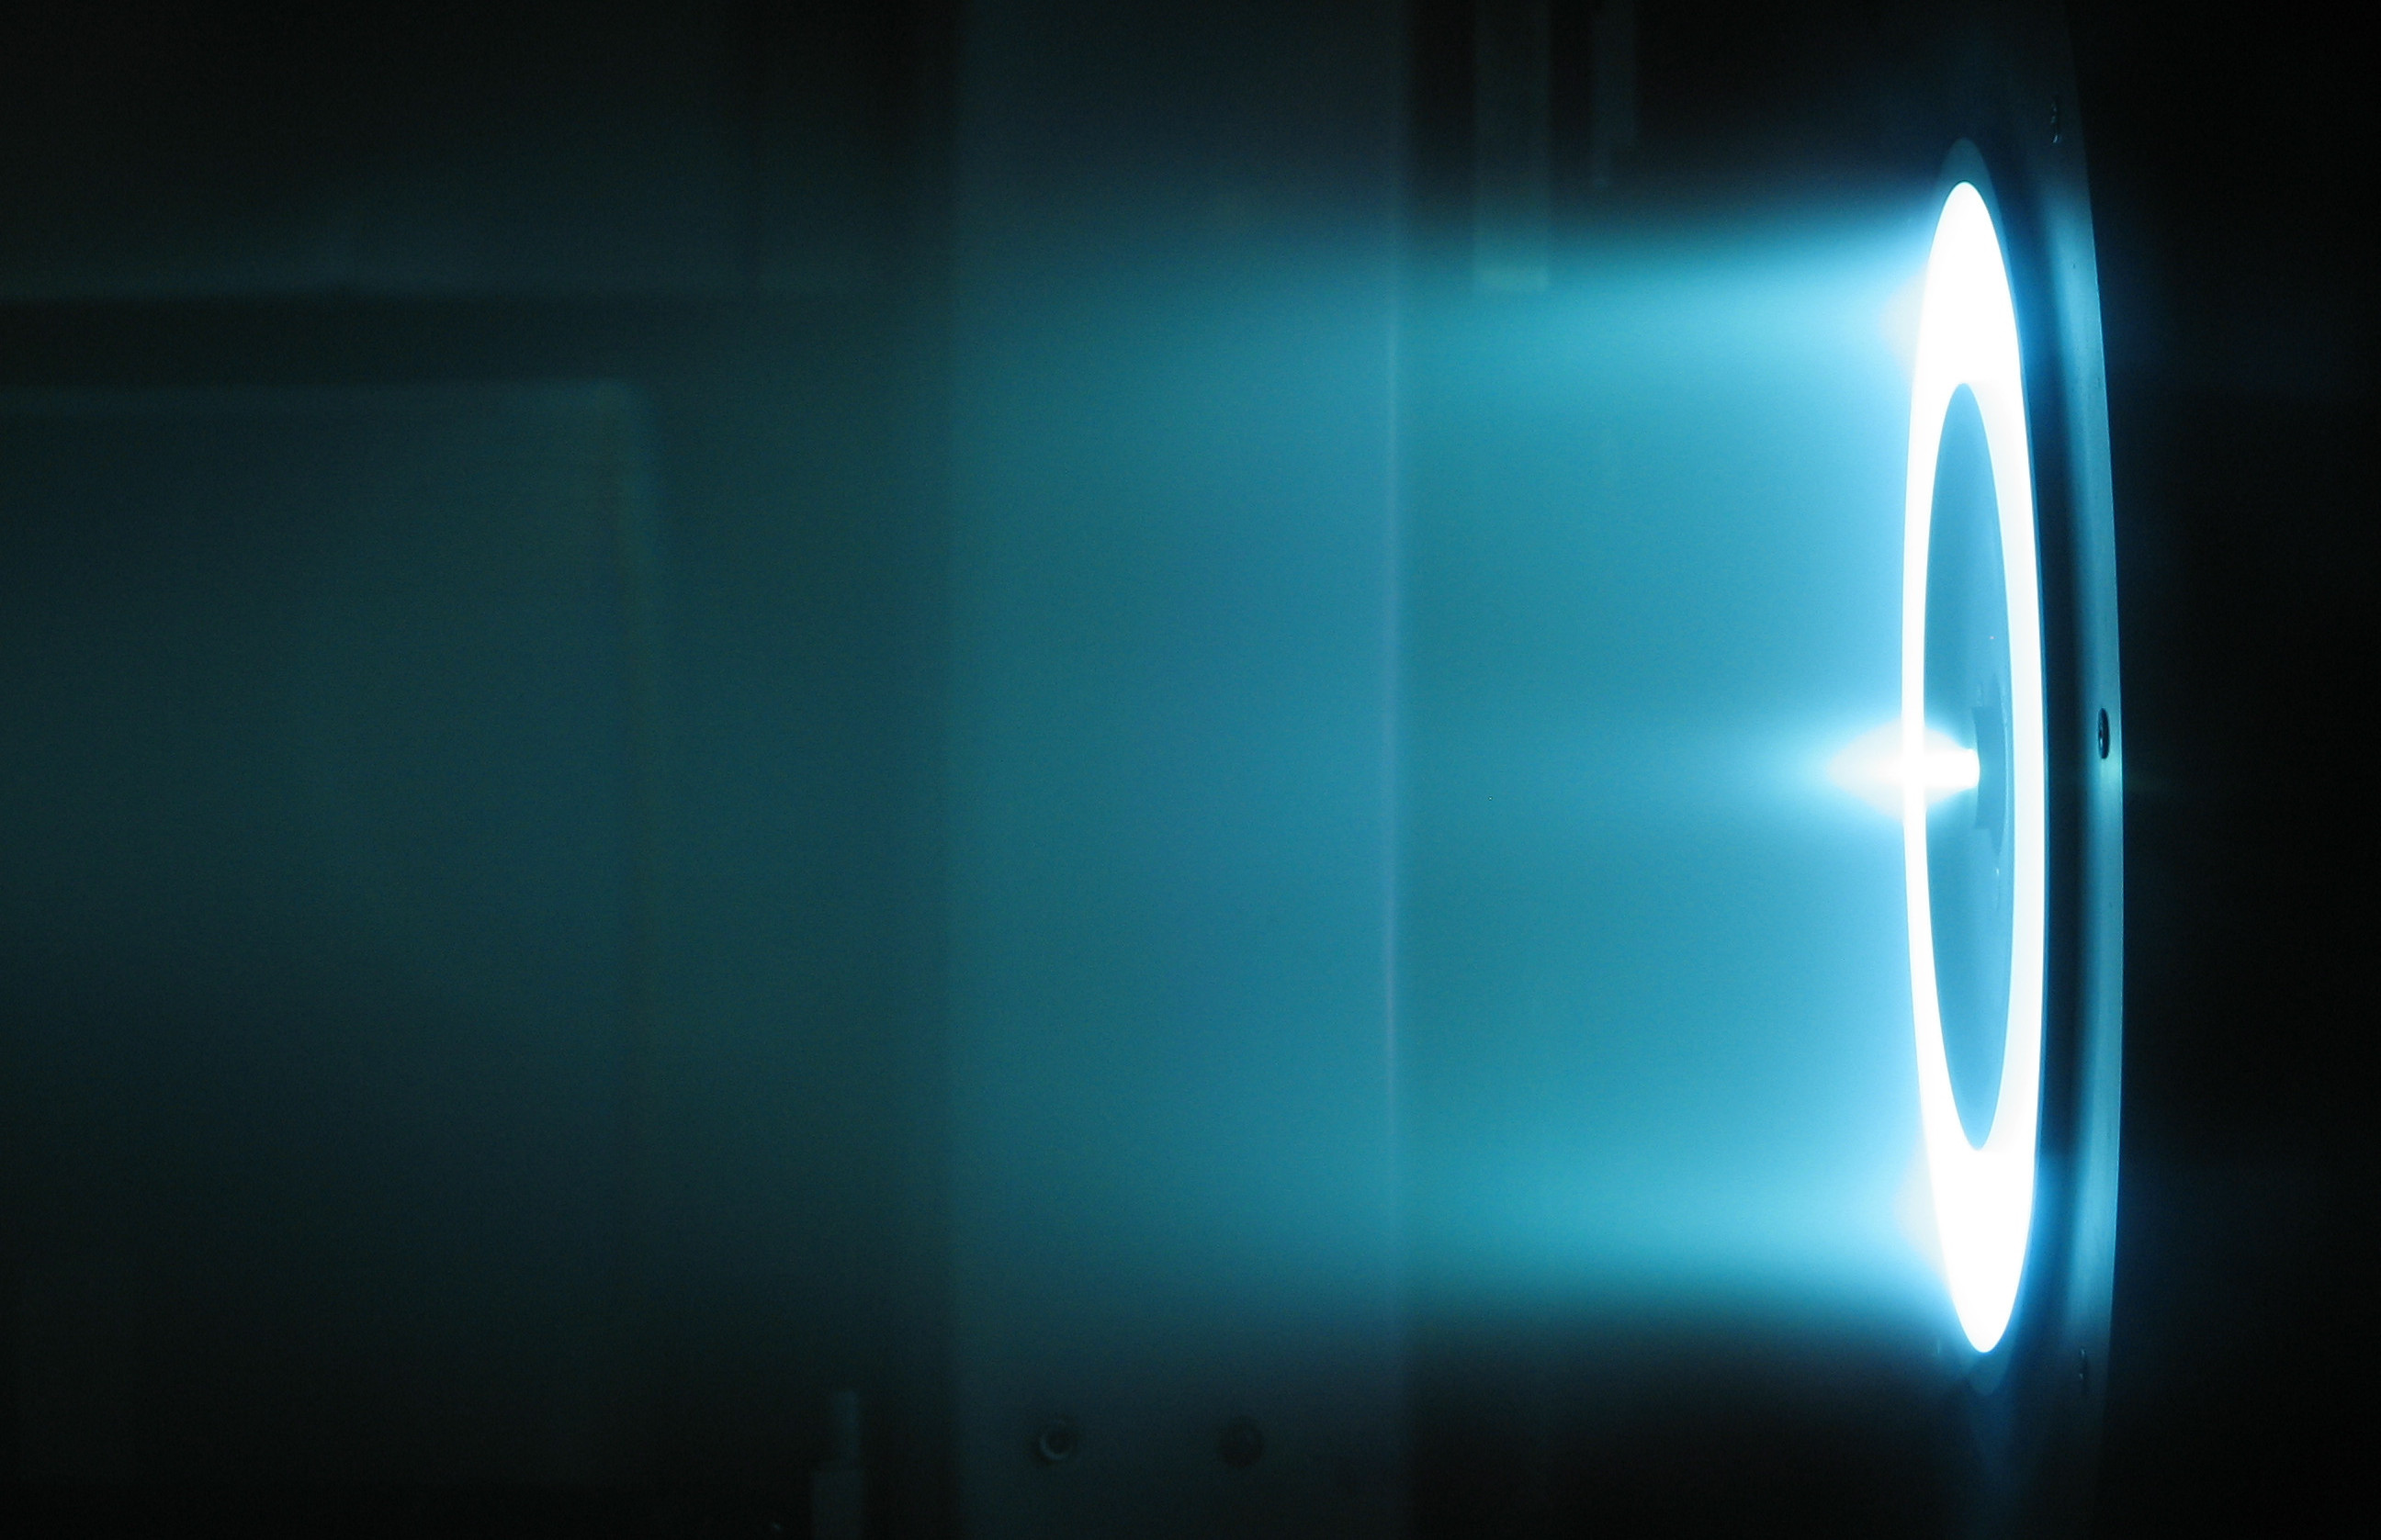 xenon_hall_thruster.jpg